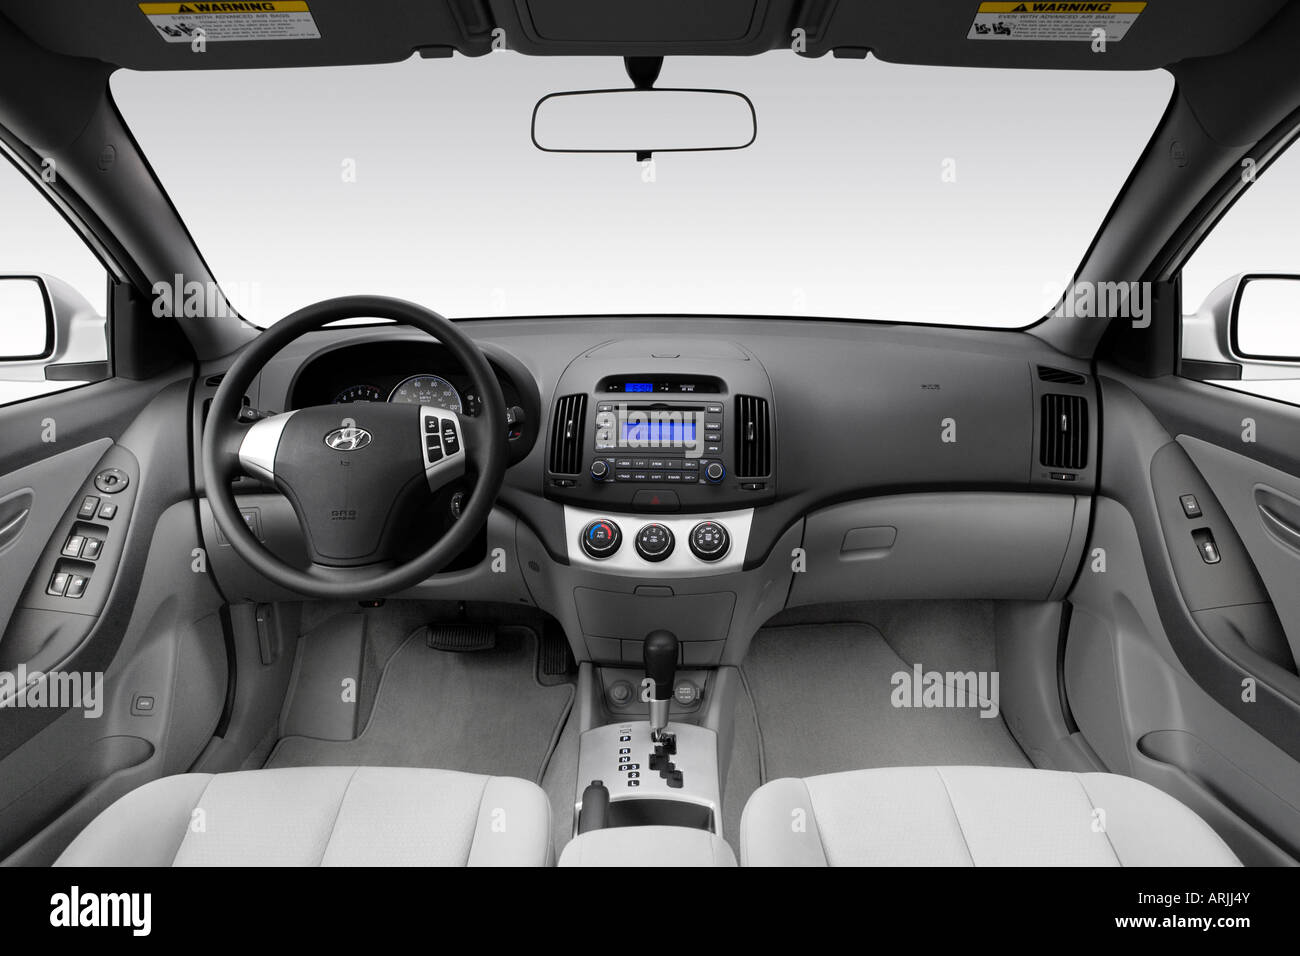 Awesome 2008 Hyundai Elantra GLS In Silver   Dashboard, Center Console, Gear  Shifter View